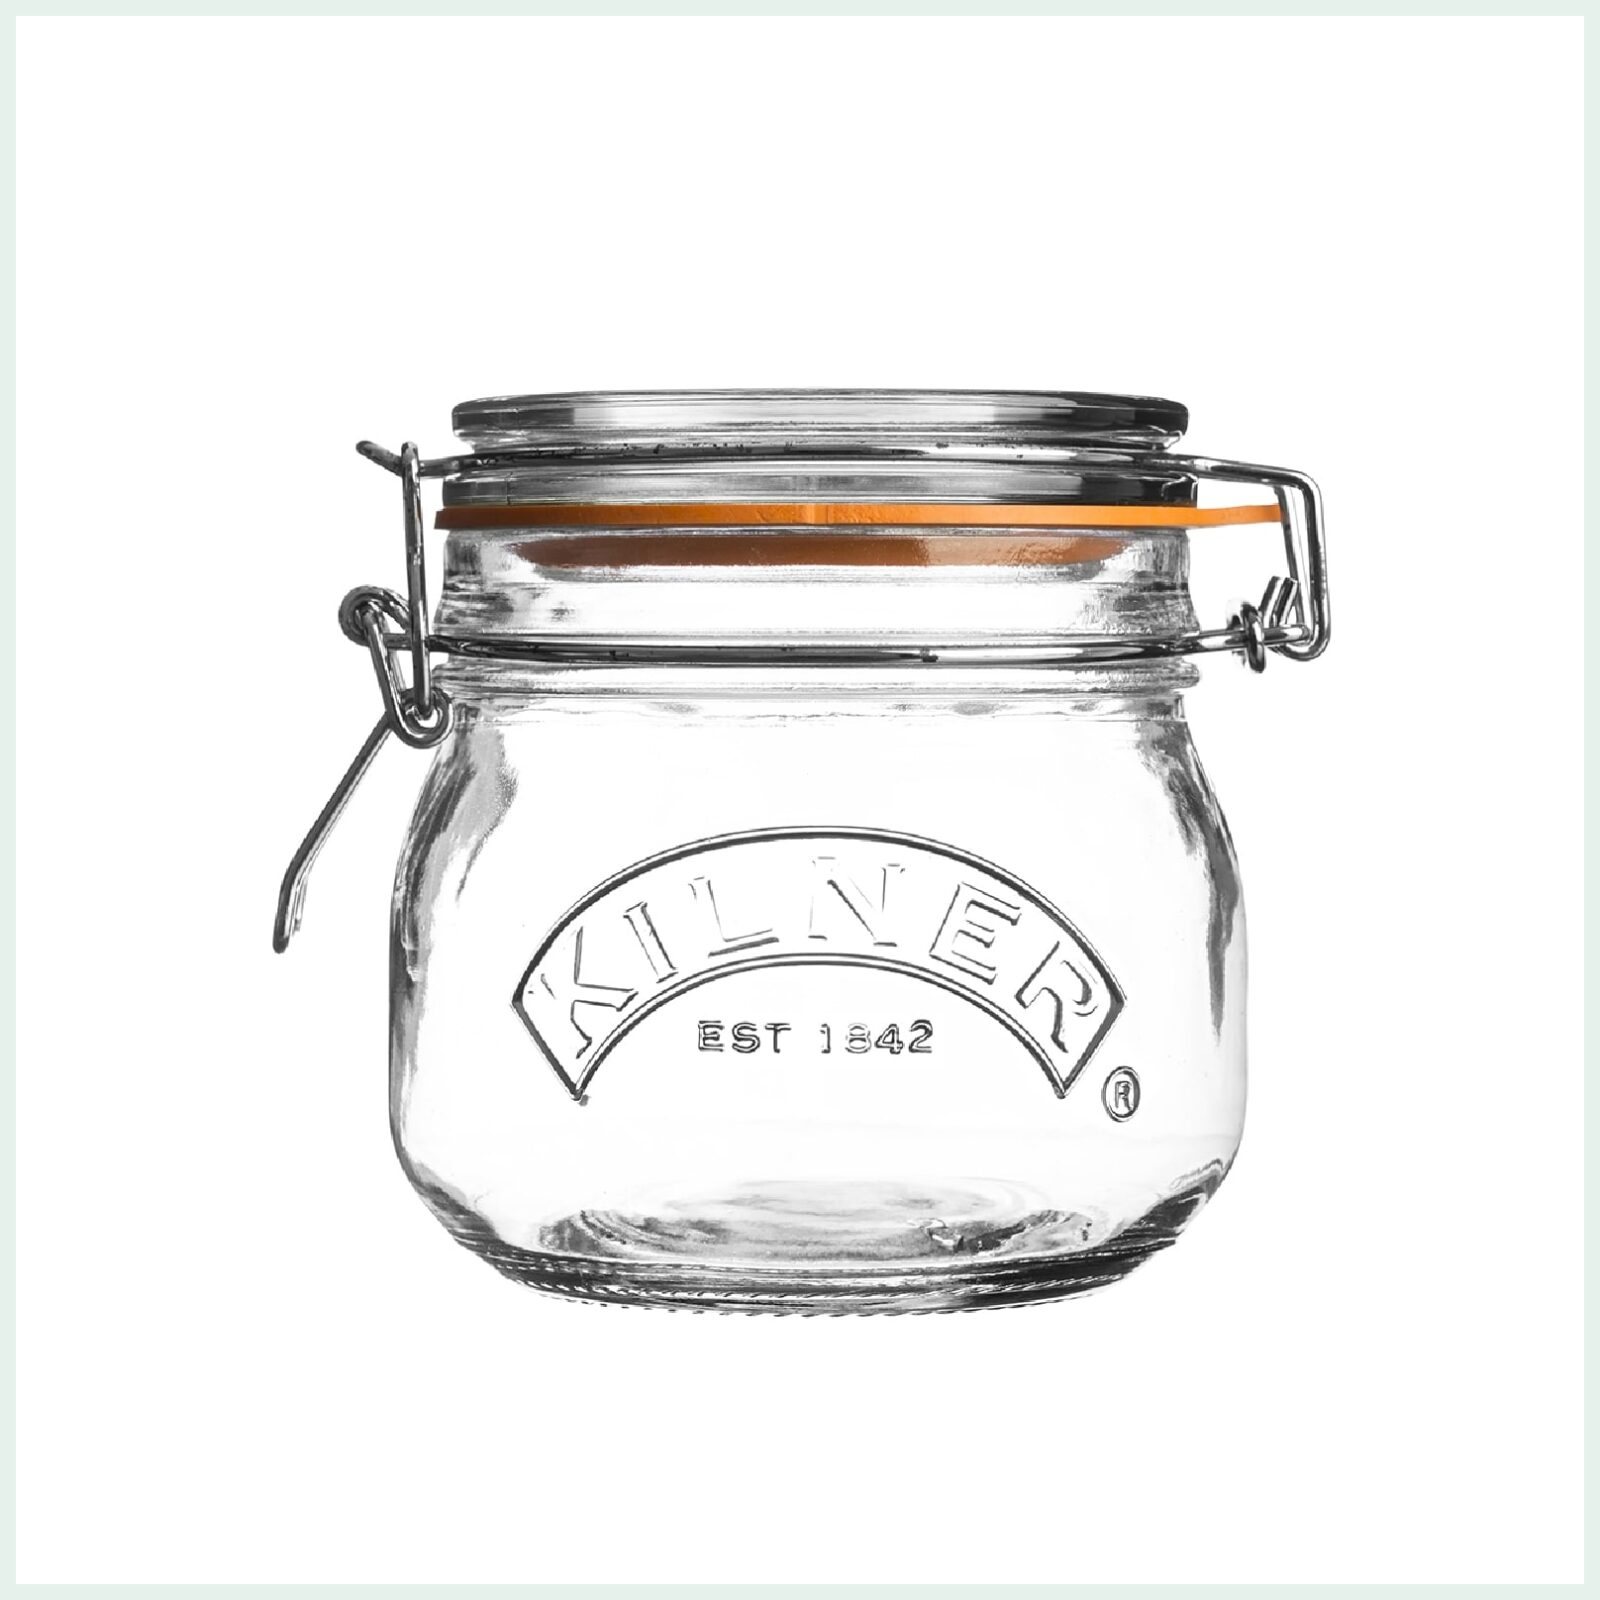 Kilner clip top jar 0.5 litre for preserving, jam making and canning